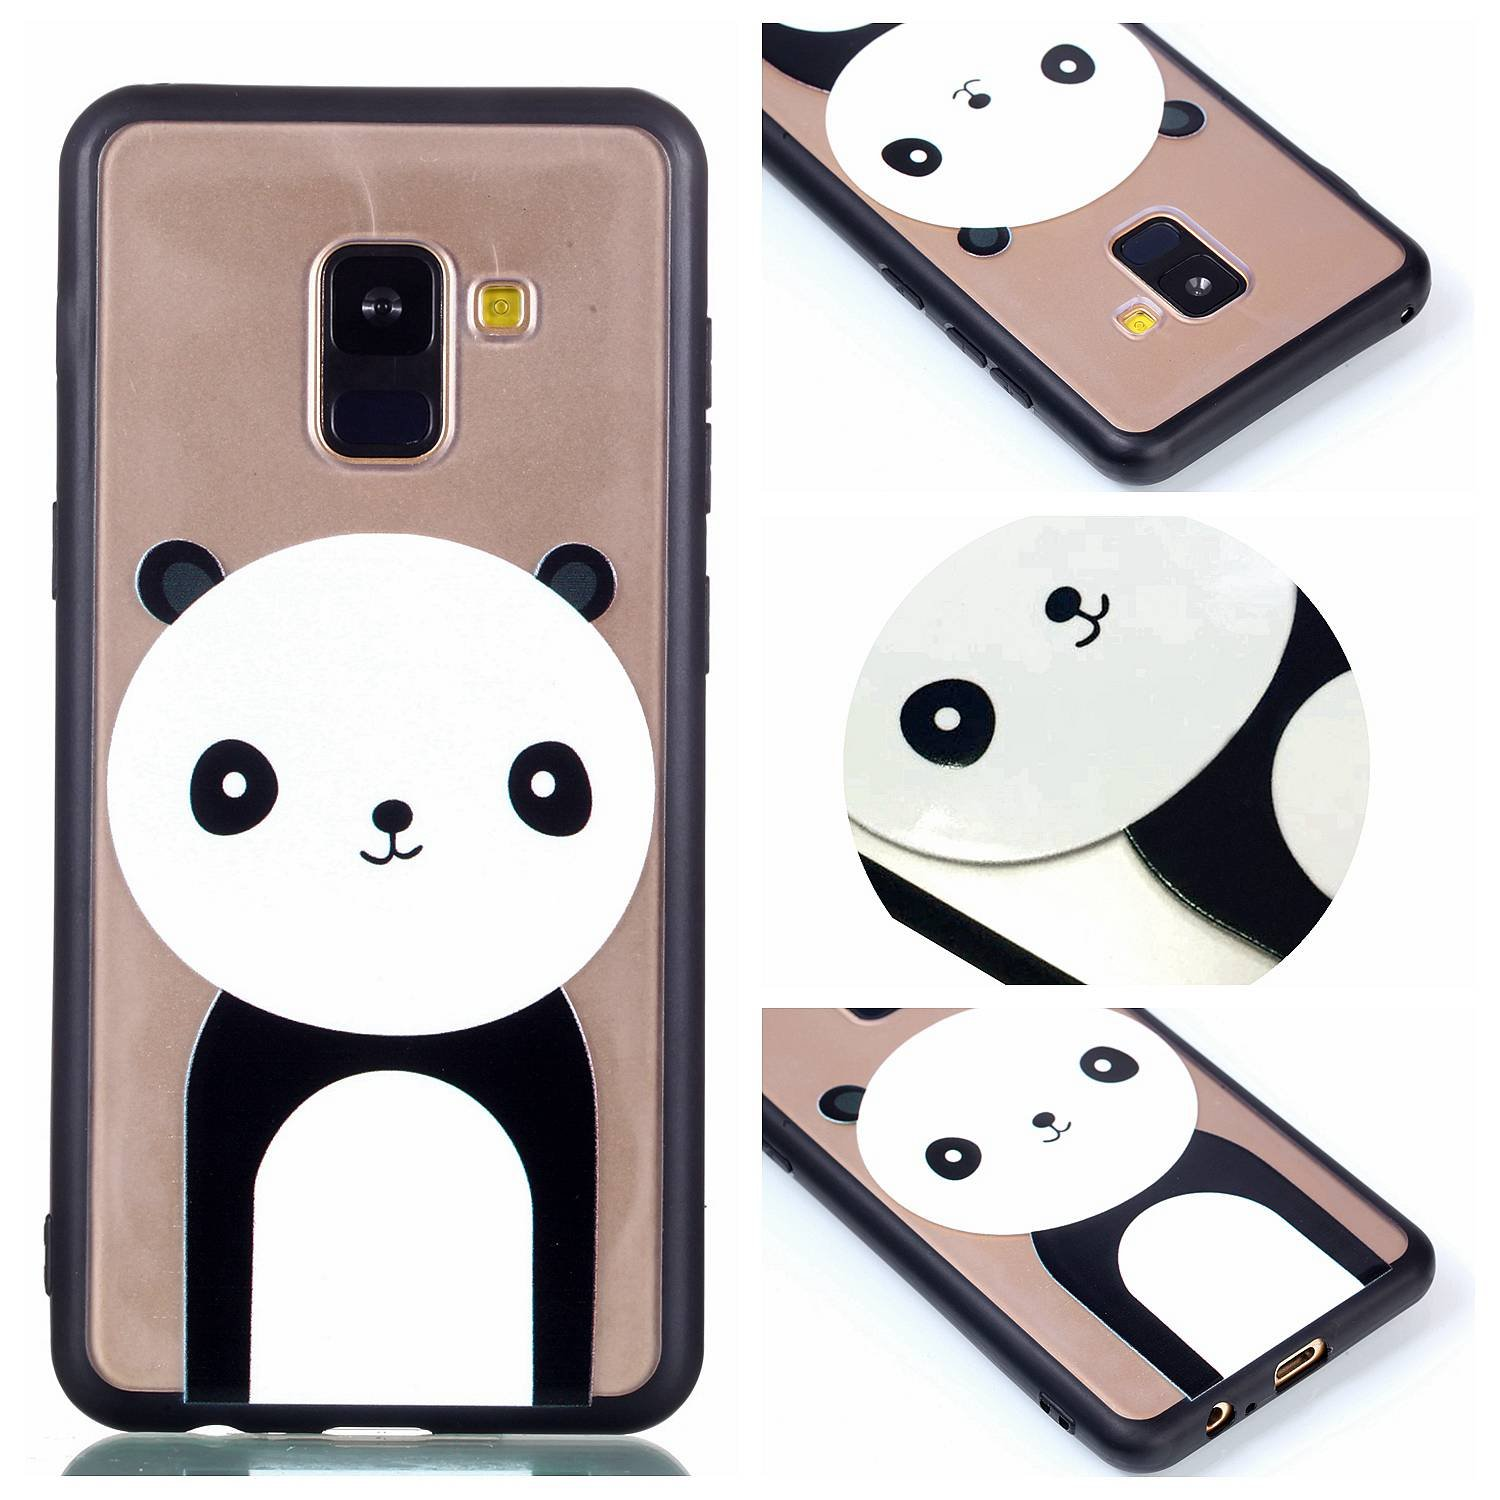 Gostyle Samsung Galaxy A8 2018 Clear Case, Hybrid 2 in 1 Soft Silicone TPU Frame + Transparent Hard PC Back Cover, Ultra Thin Fashion Creative Pattern Shockproof Bumper Cover, Cute Panda